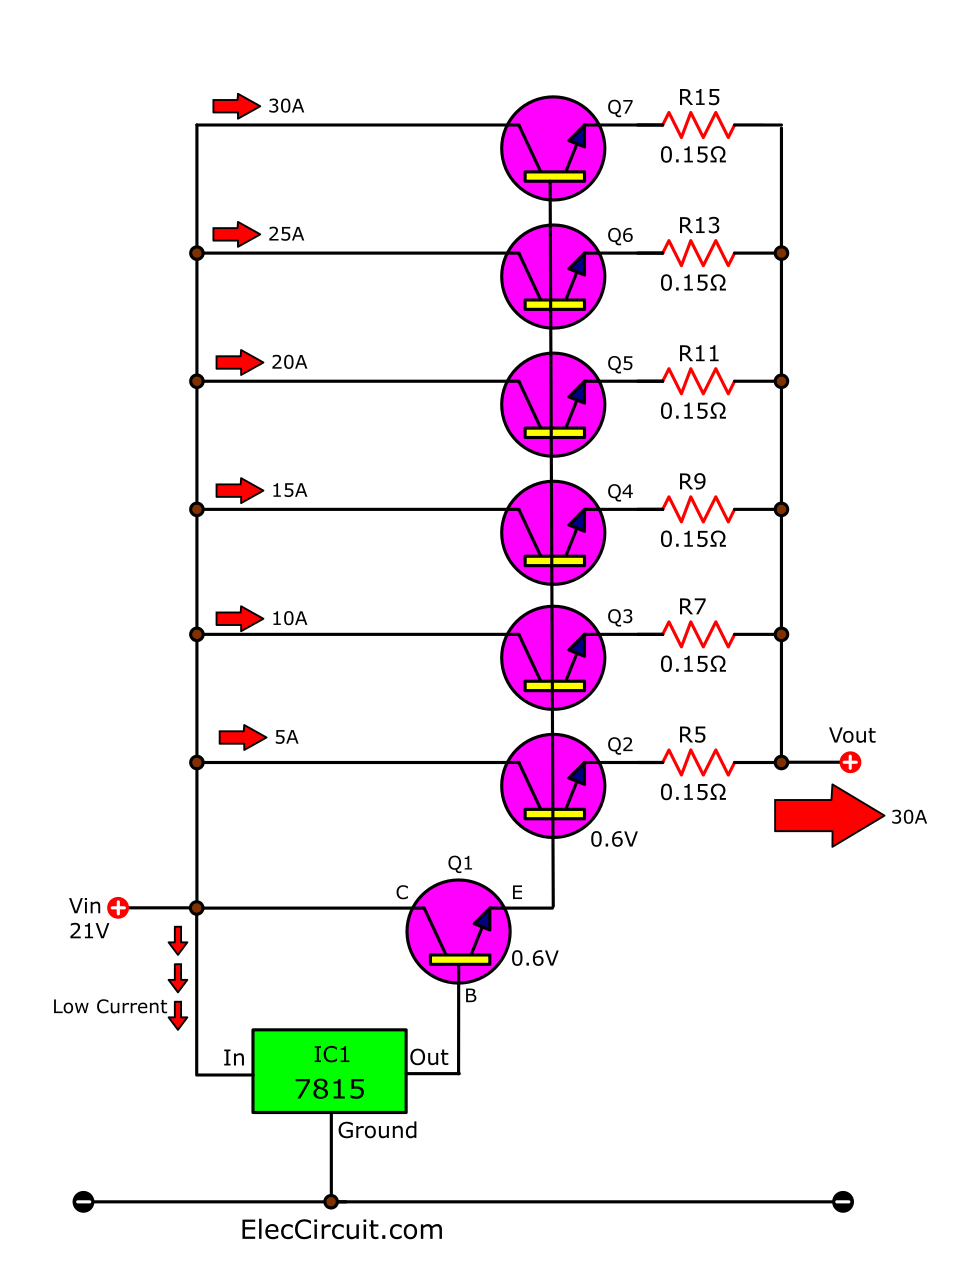 Connects transistor in parallel boost current upto 30A